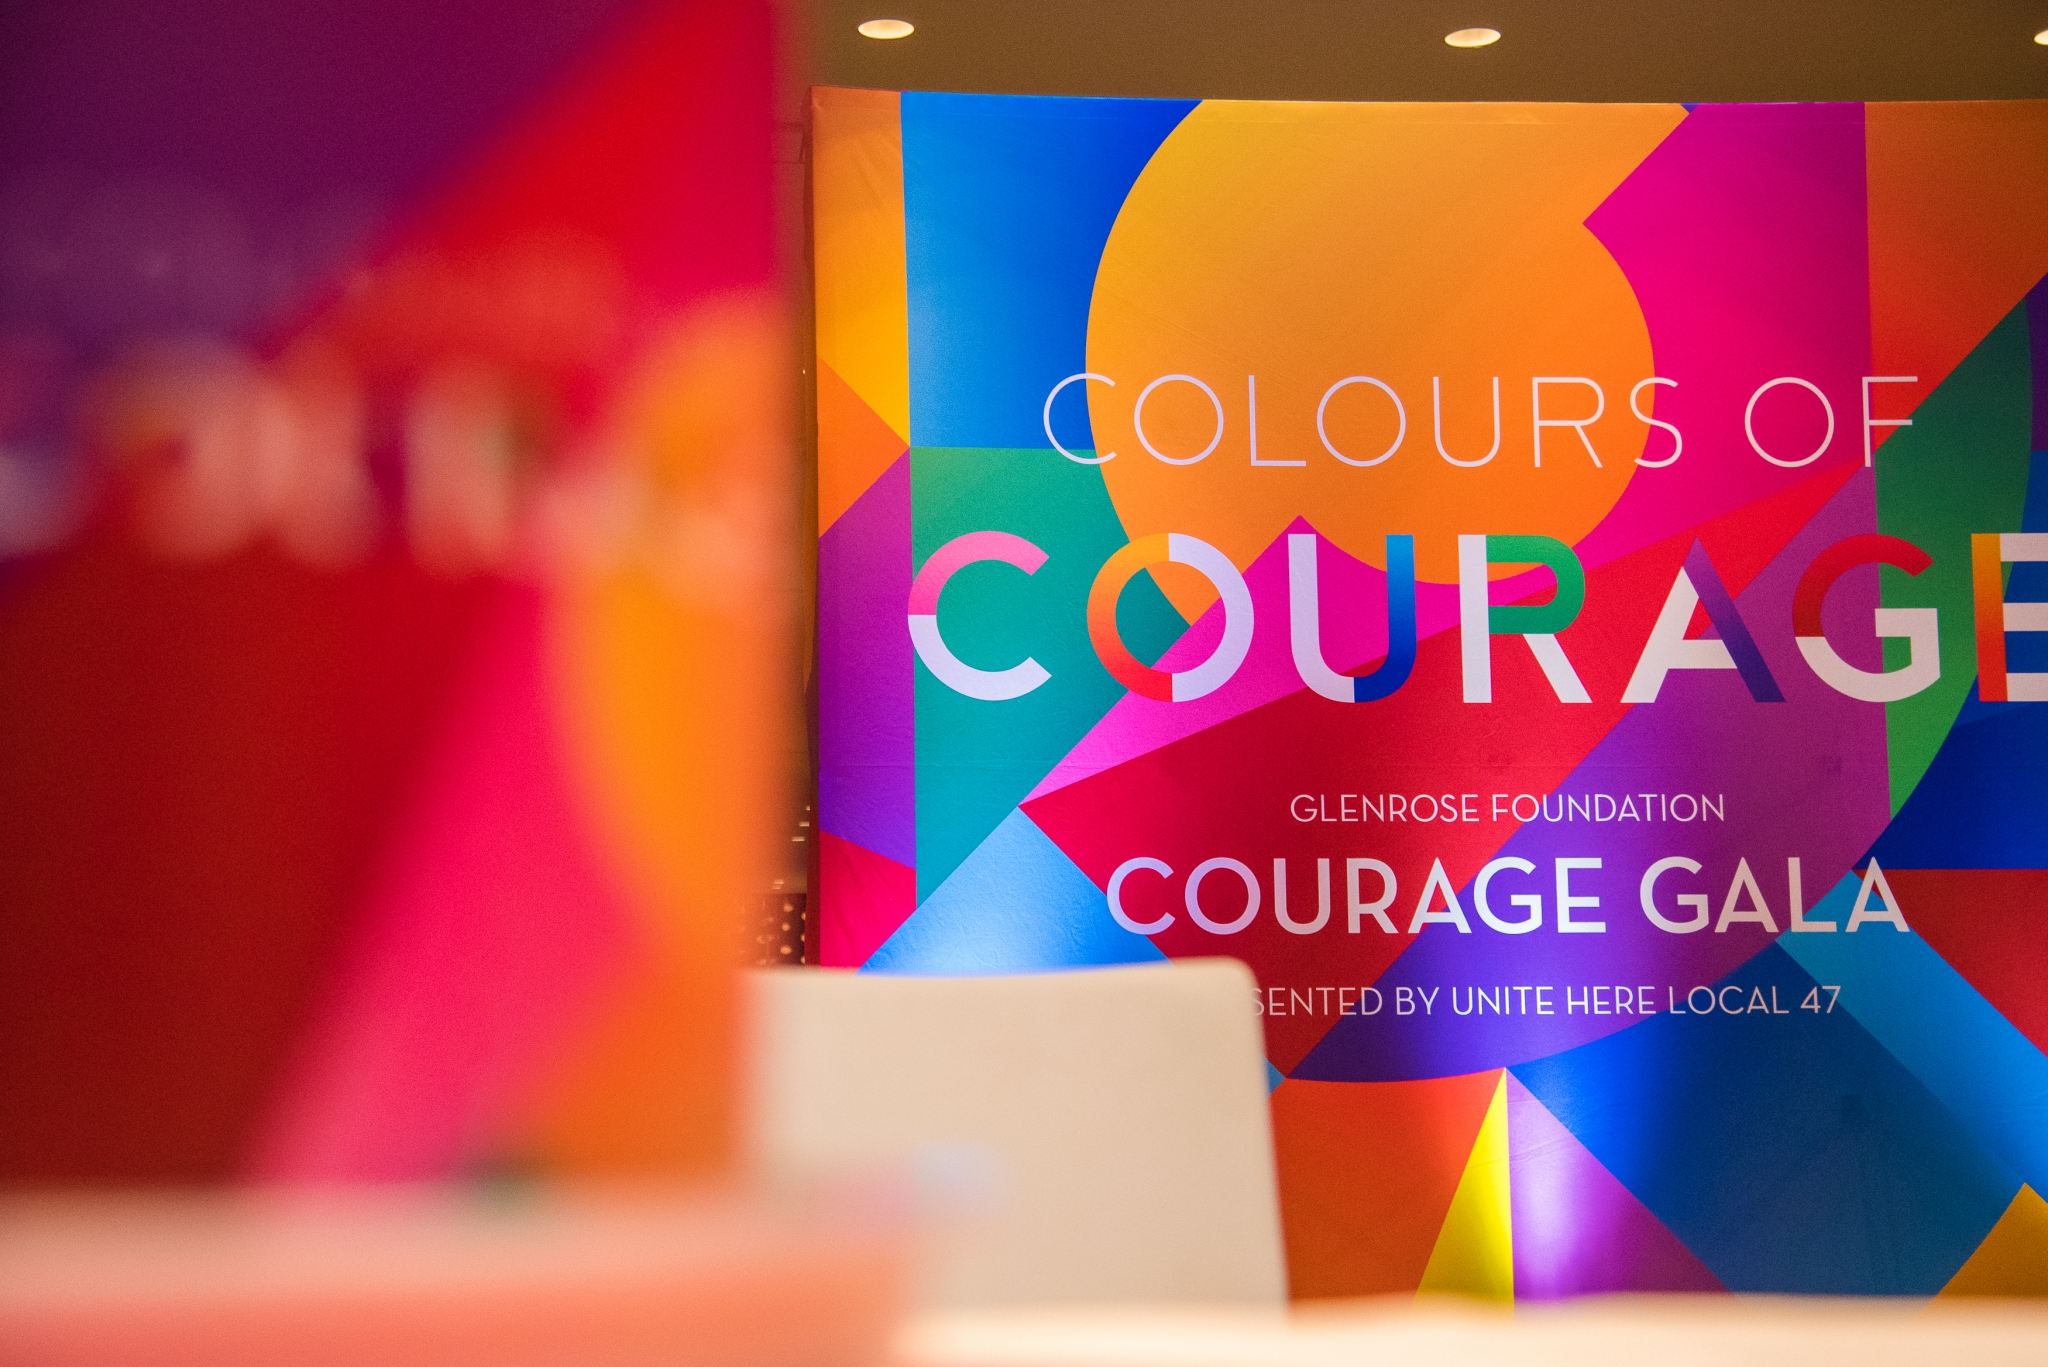 Brghtly coloured sign that says Courage Gala